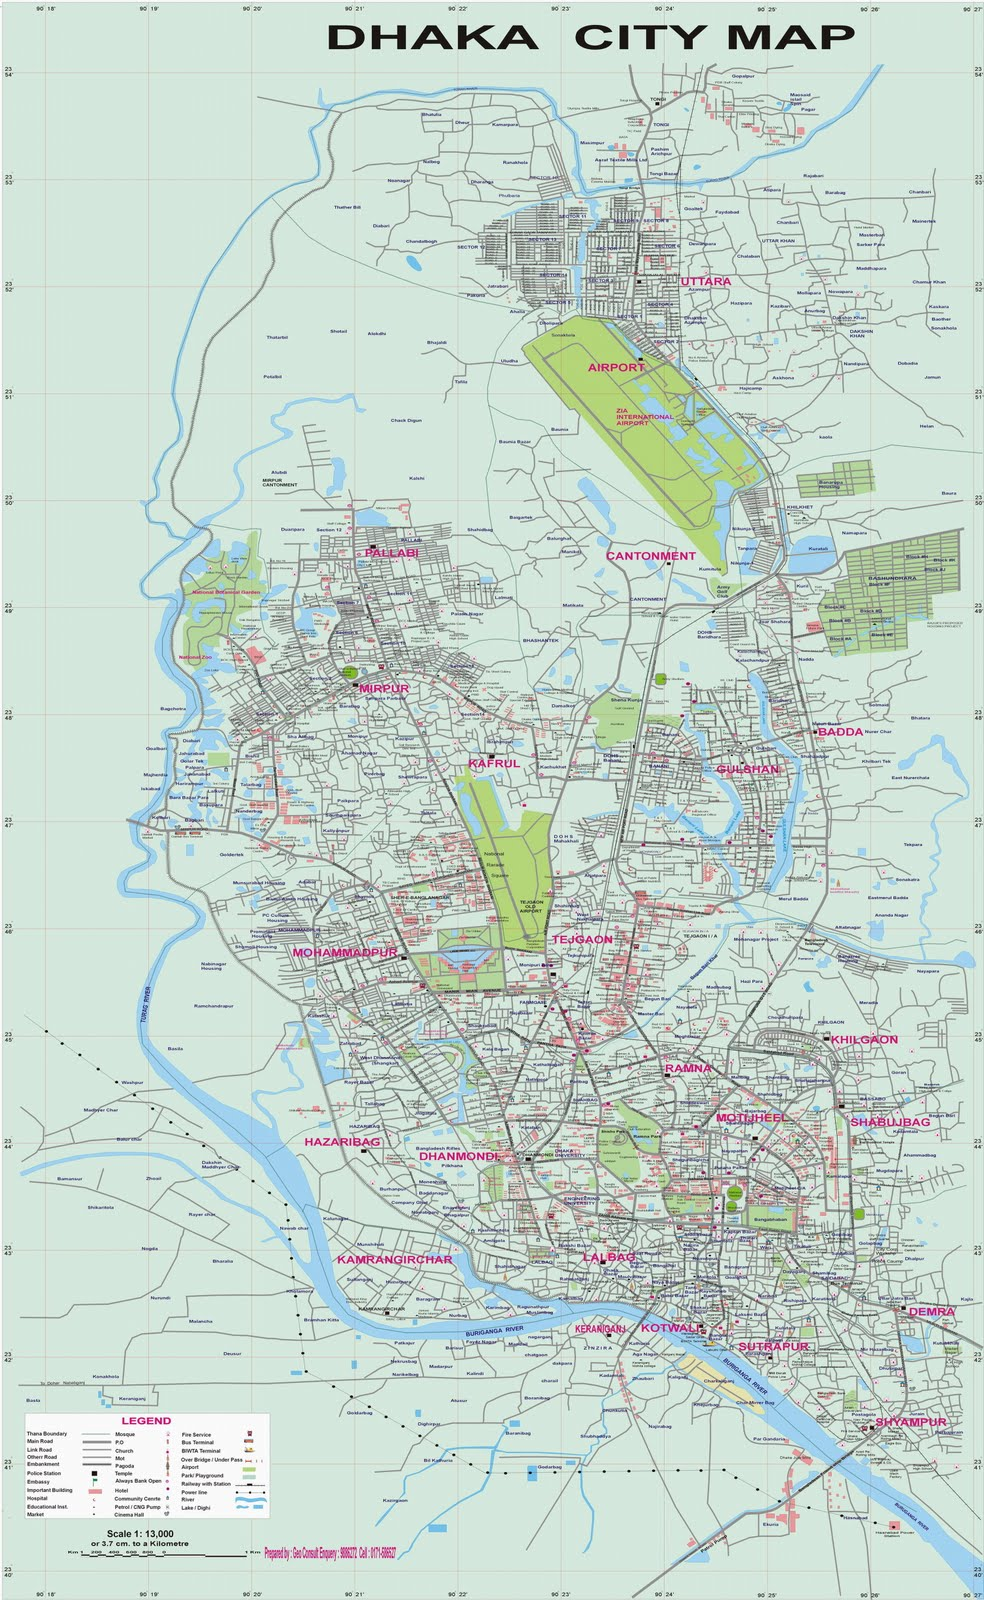 Dhaka: Maps of Dhaka City and Bangladesh Transport System